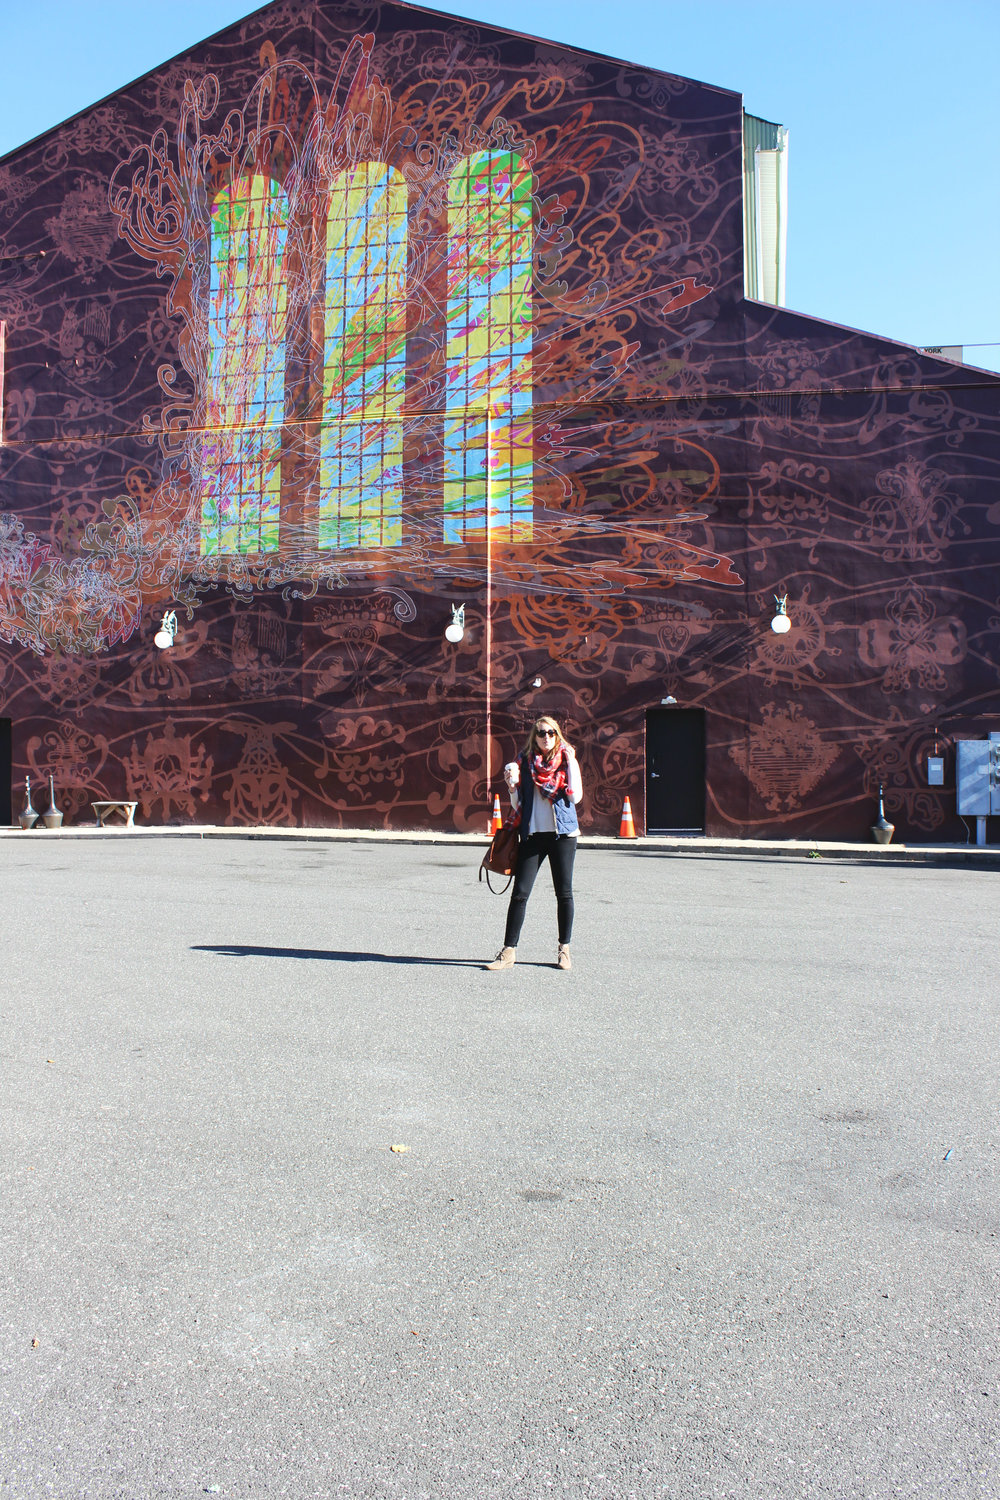 A Visit to the Spring Arts Murals in Philadelphia